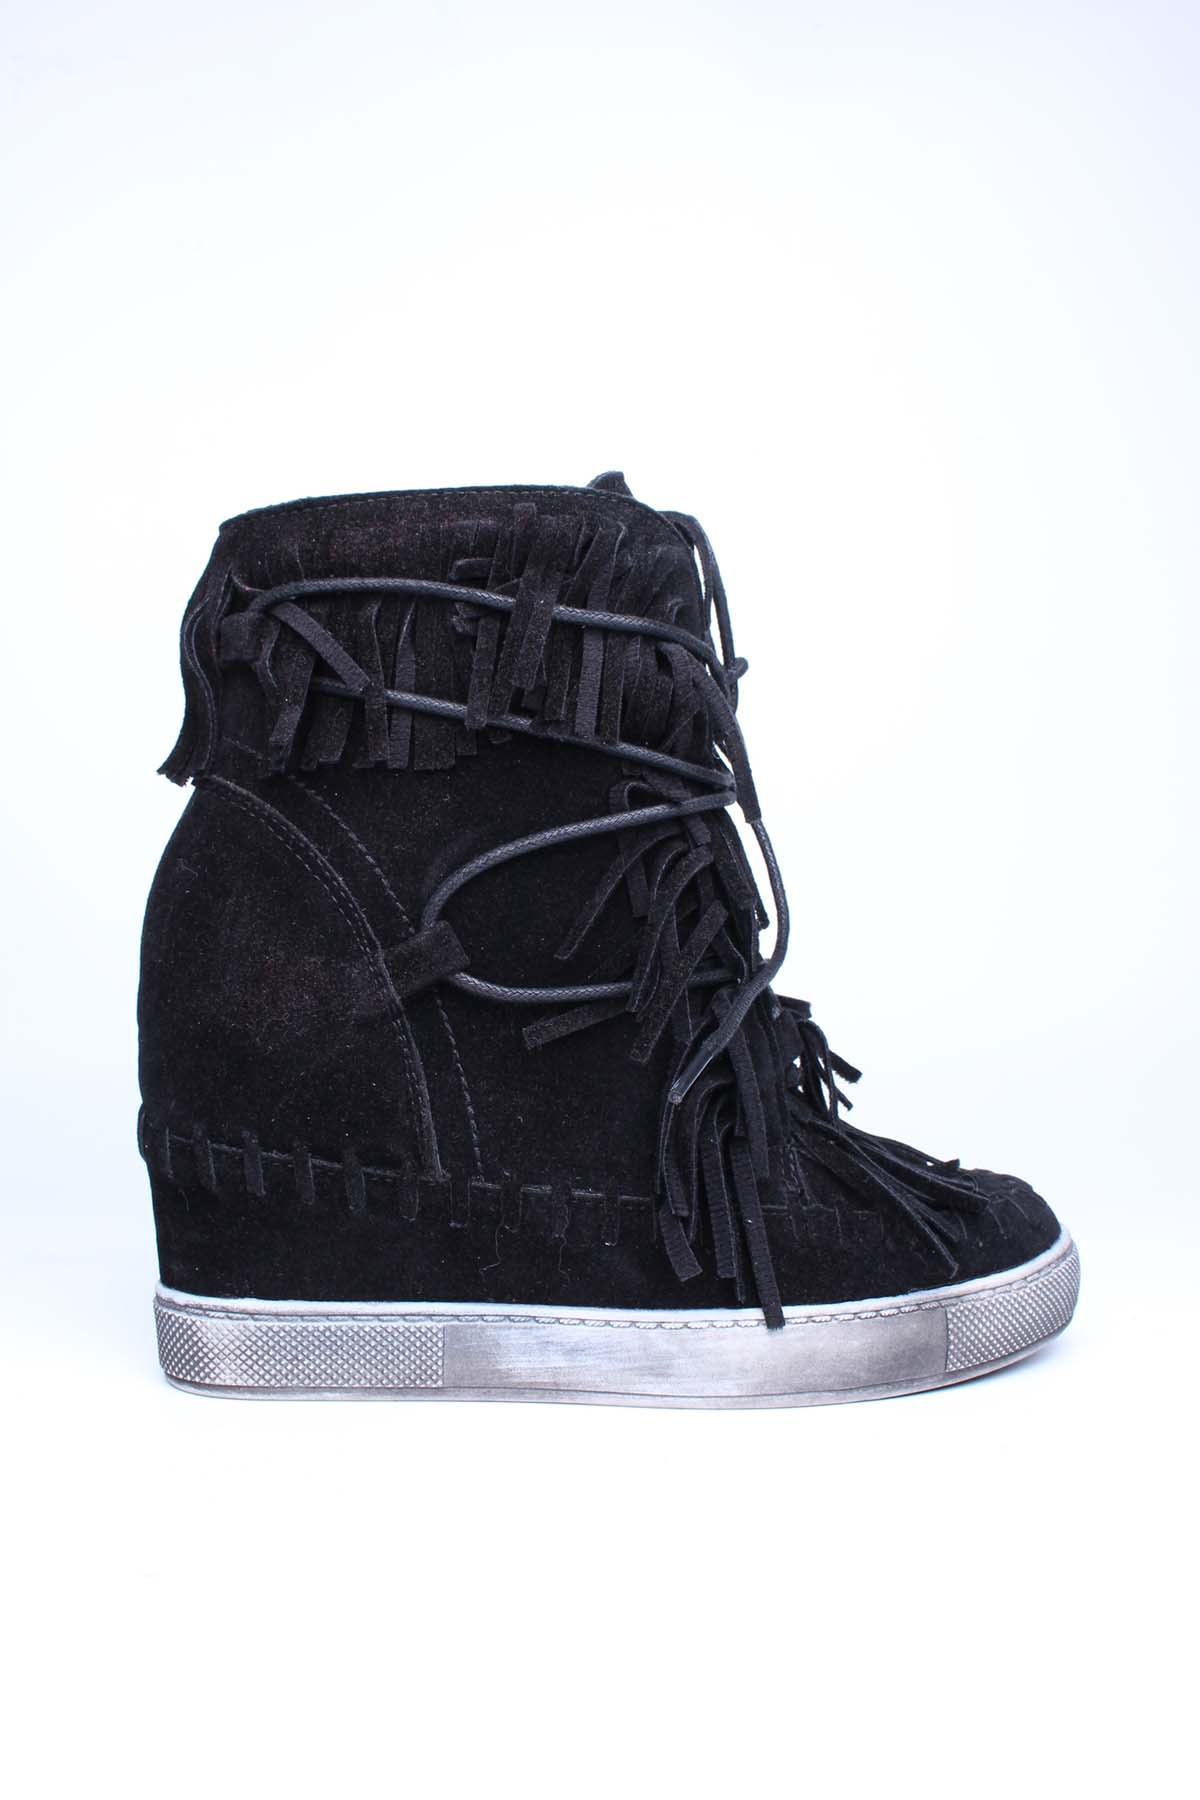 Baskets Chaussures Noir Girlhood L08-10 #c eFashion Paris